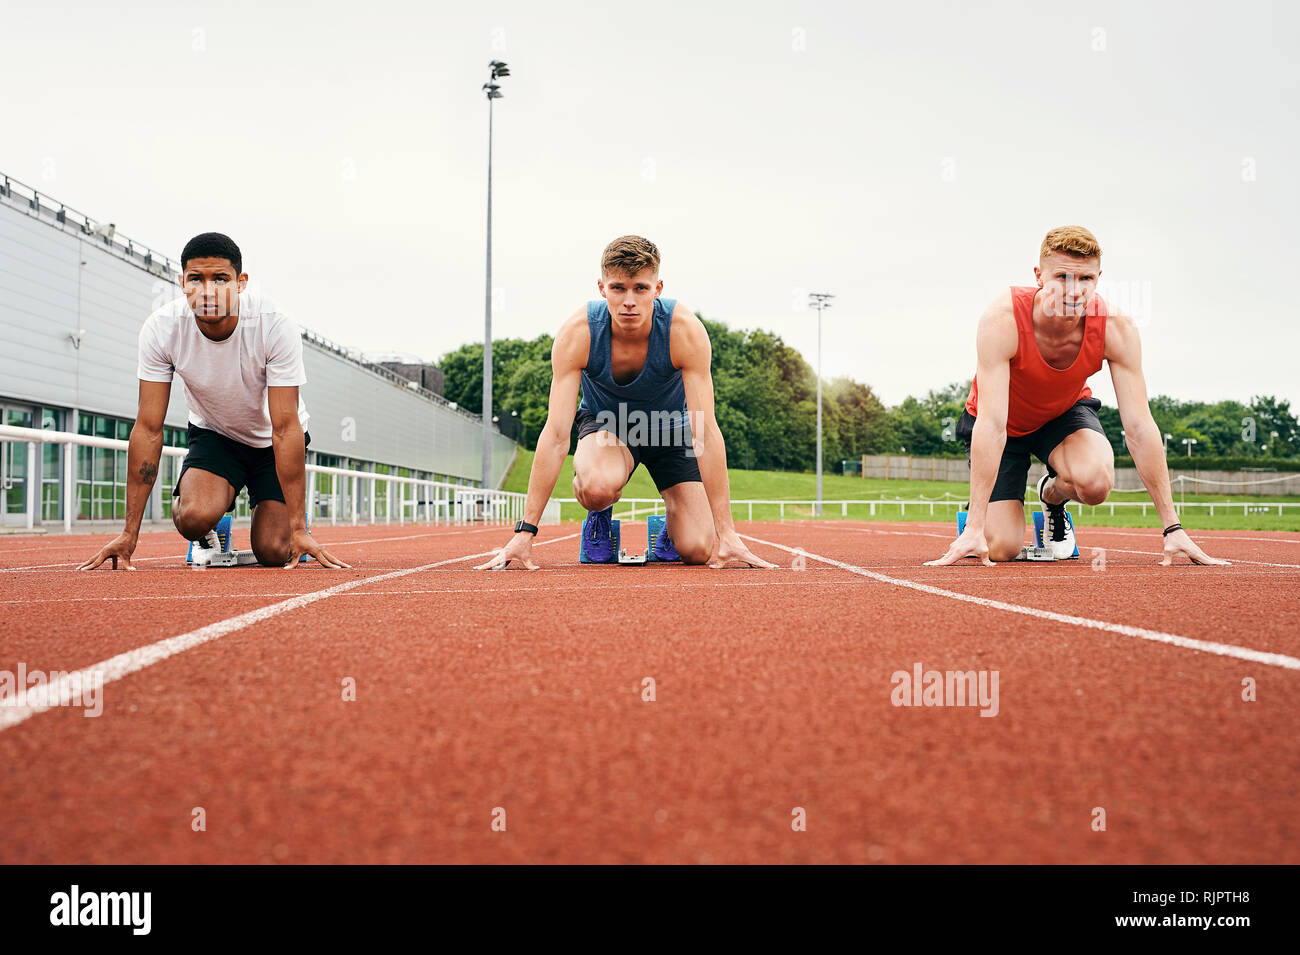 Runners at starting line on running track - Stock Image